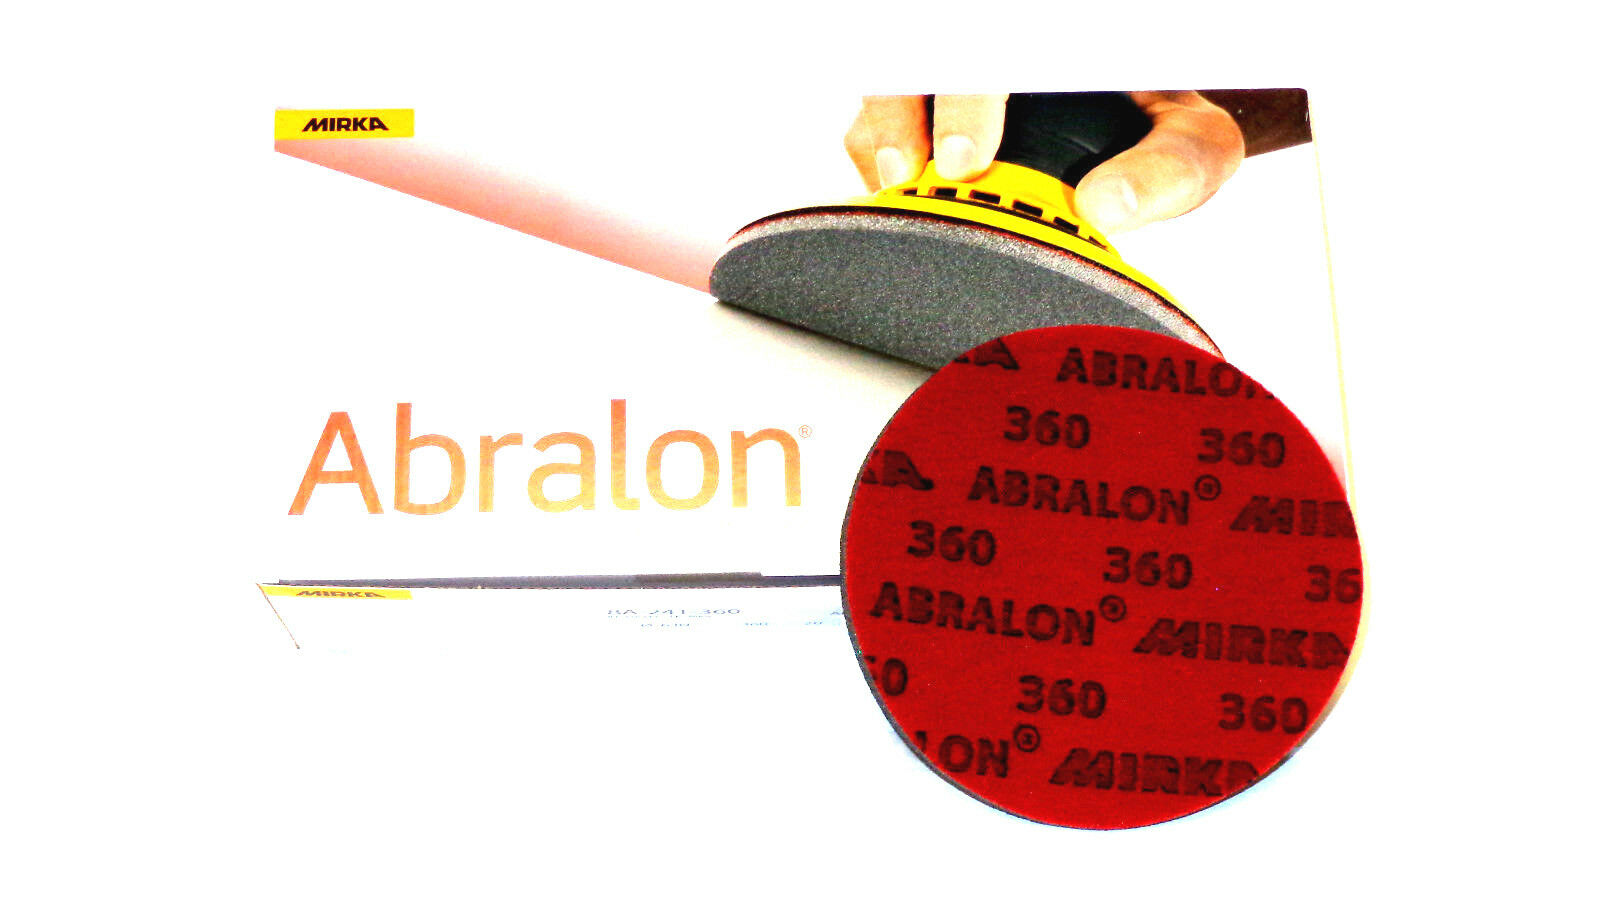 20  6   ABRALON PADS BRAND NEW 2000 GRIT - AUTHENTIC PADS BY MIRKA